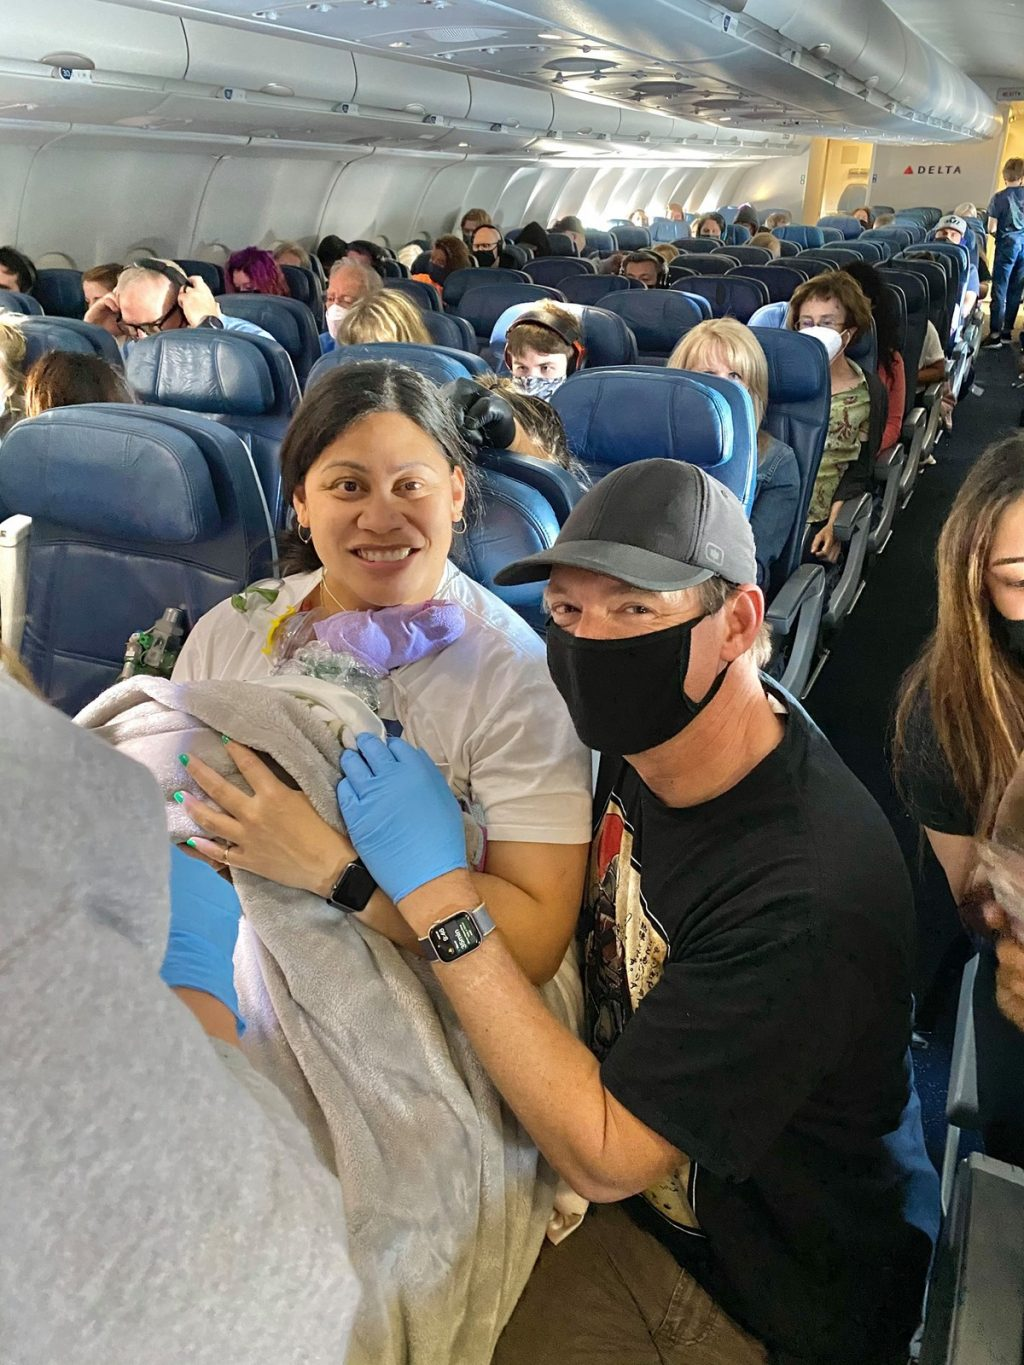 A woman gives birth during a flight to Hawaii |  Scientist